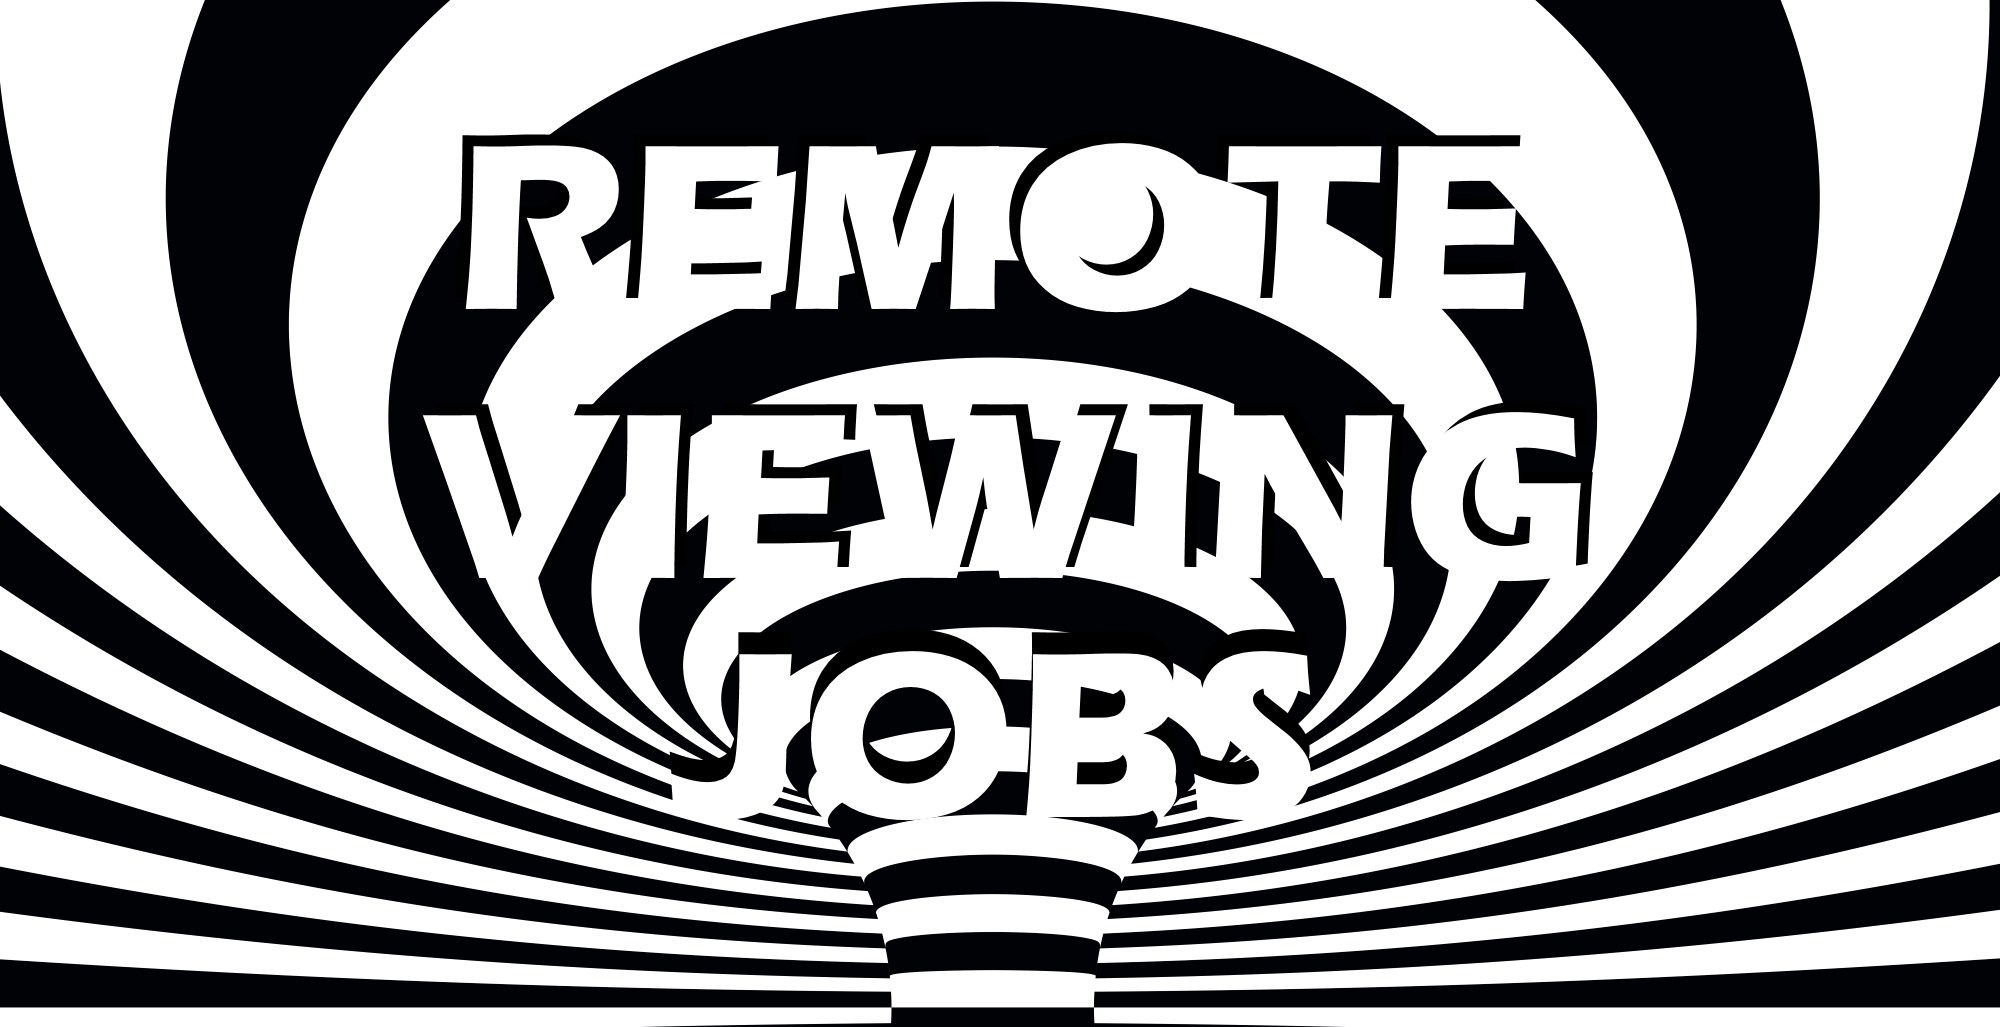 Work as a Remote Viewer at The Soul Rider LLC, they\'re Hiring!